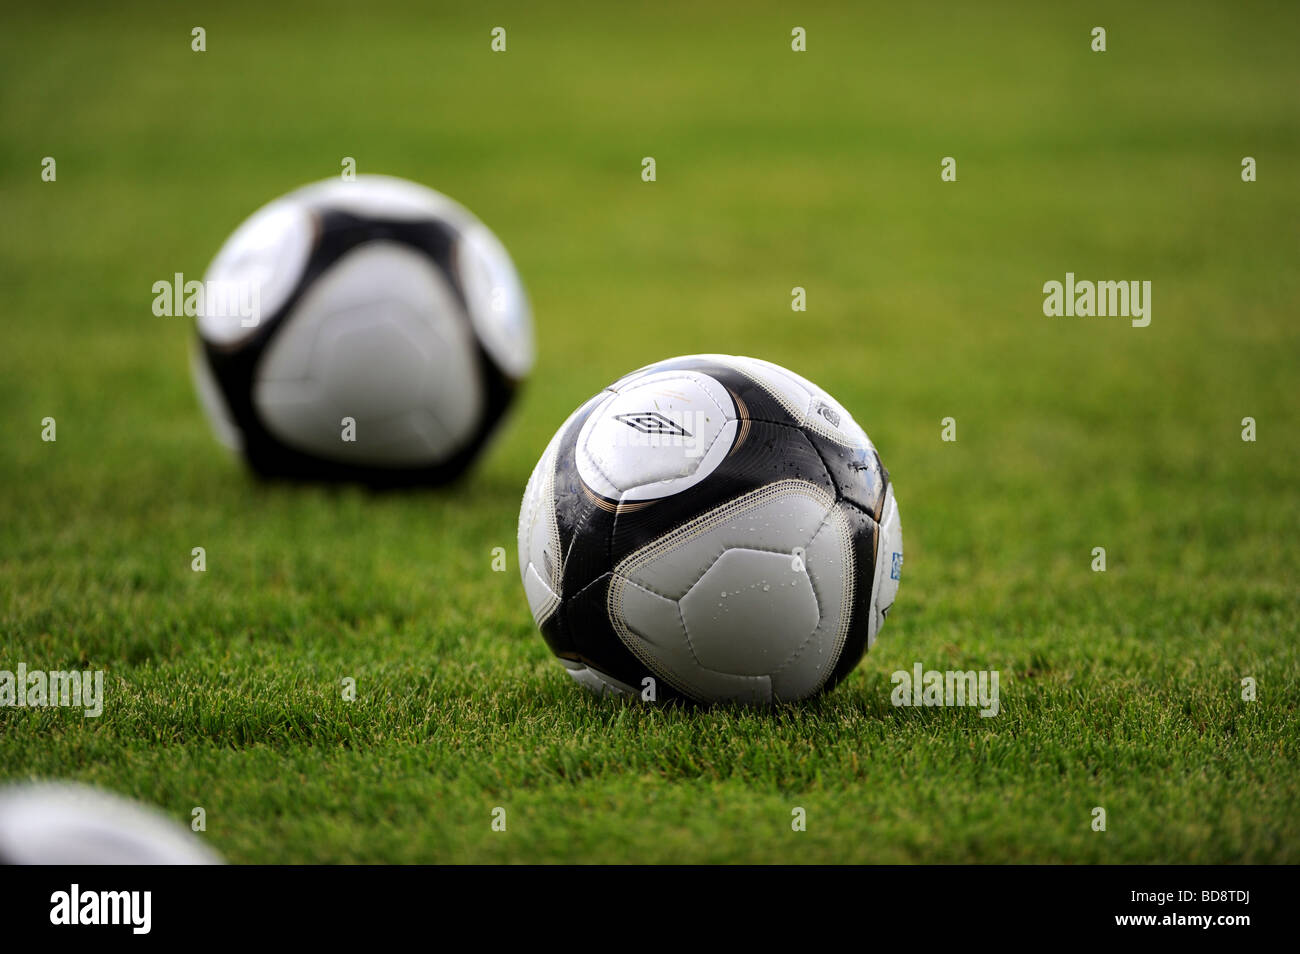 Two footballs on a football pitch - Stock Image